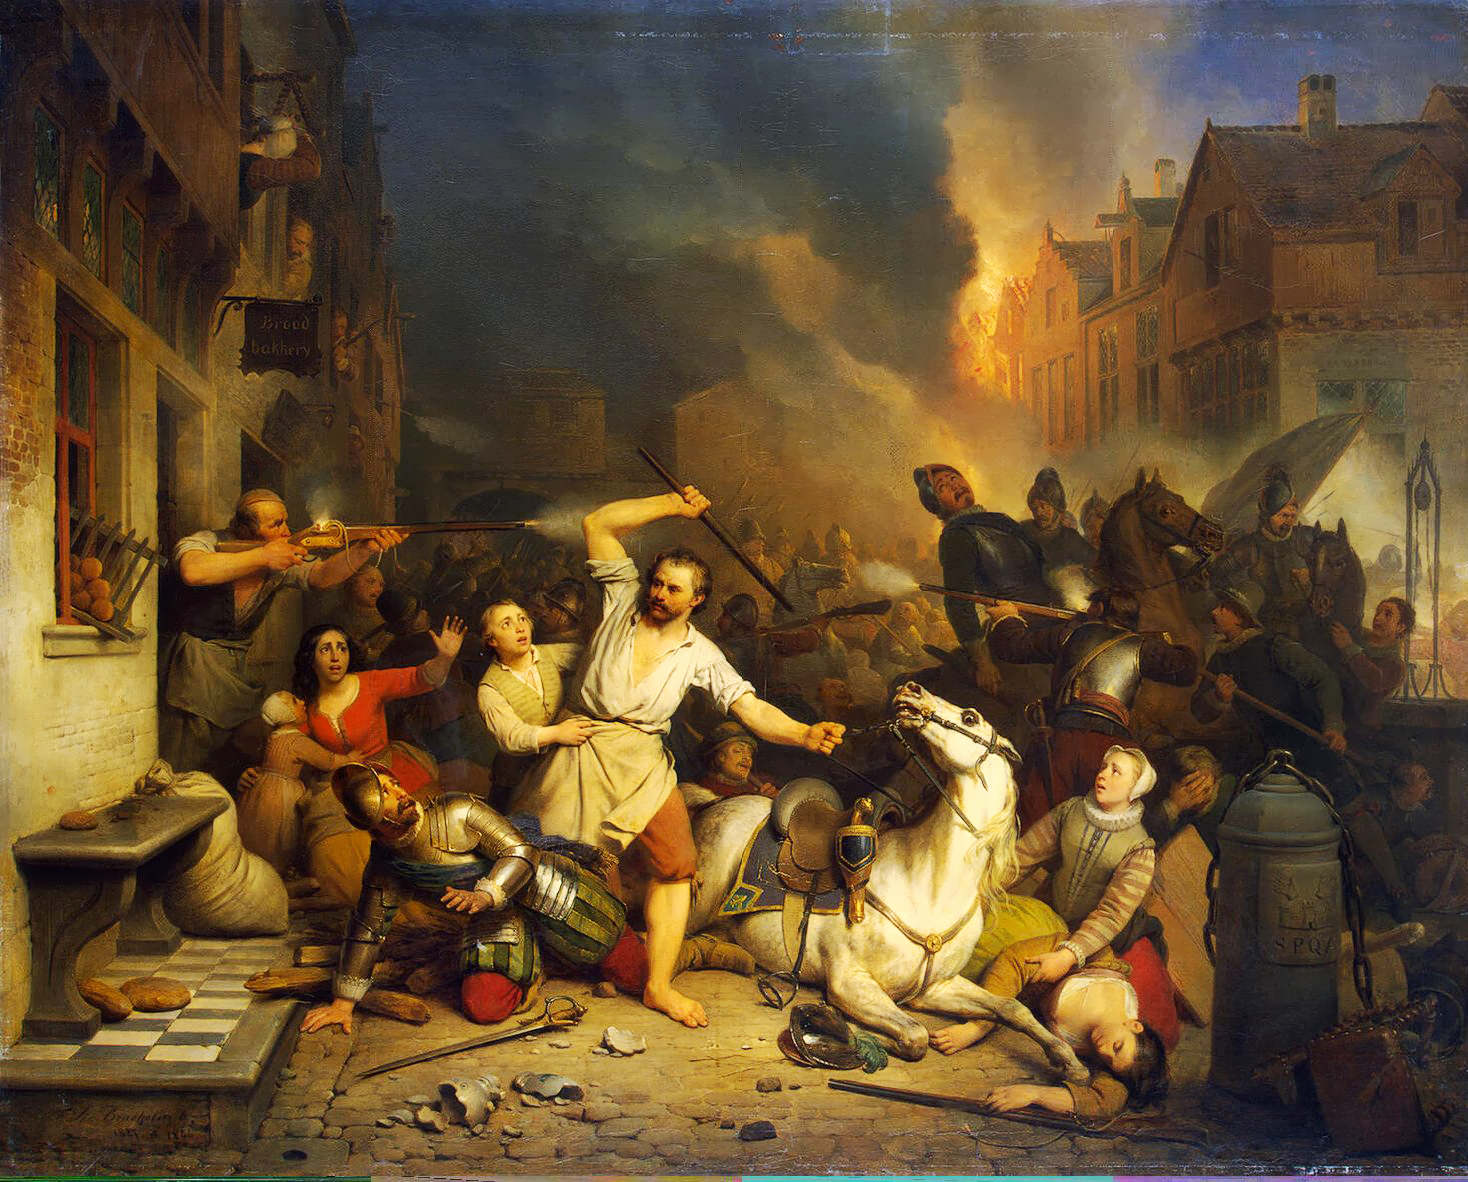 a history of the french revolution a time of great changes in europe According to the flow of history, during the french revolution,  what did european monarchs fear from france a:  the countries of europe went to great lengths.